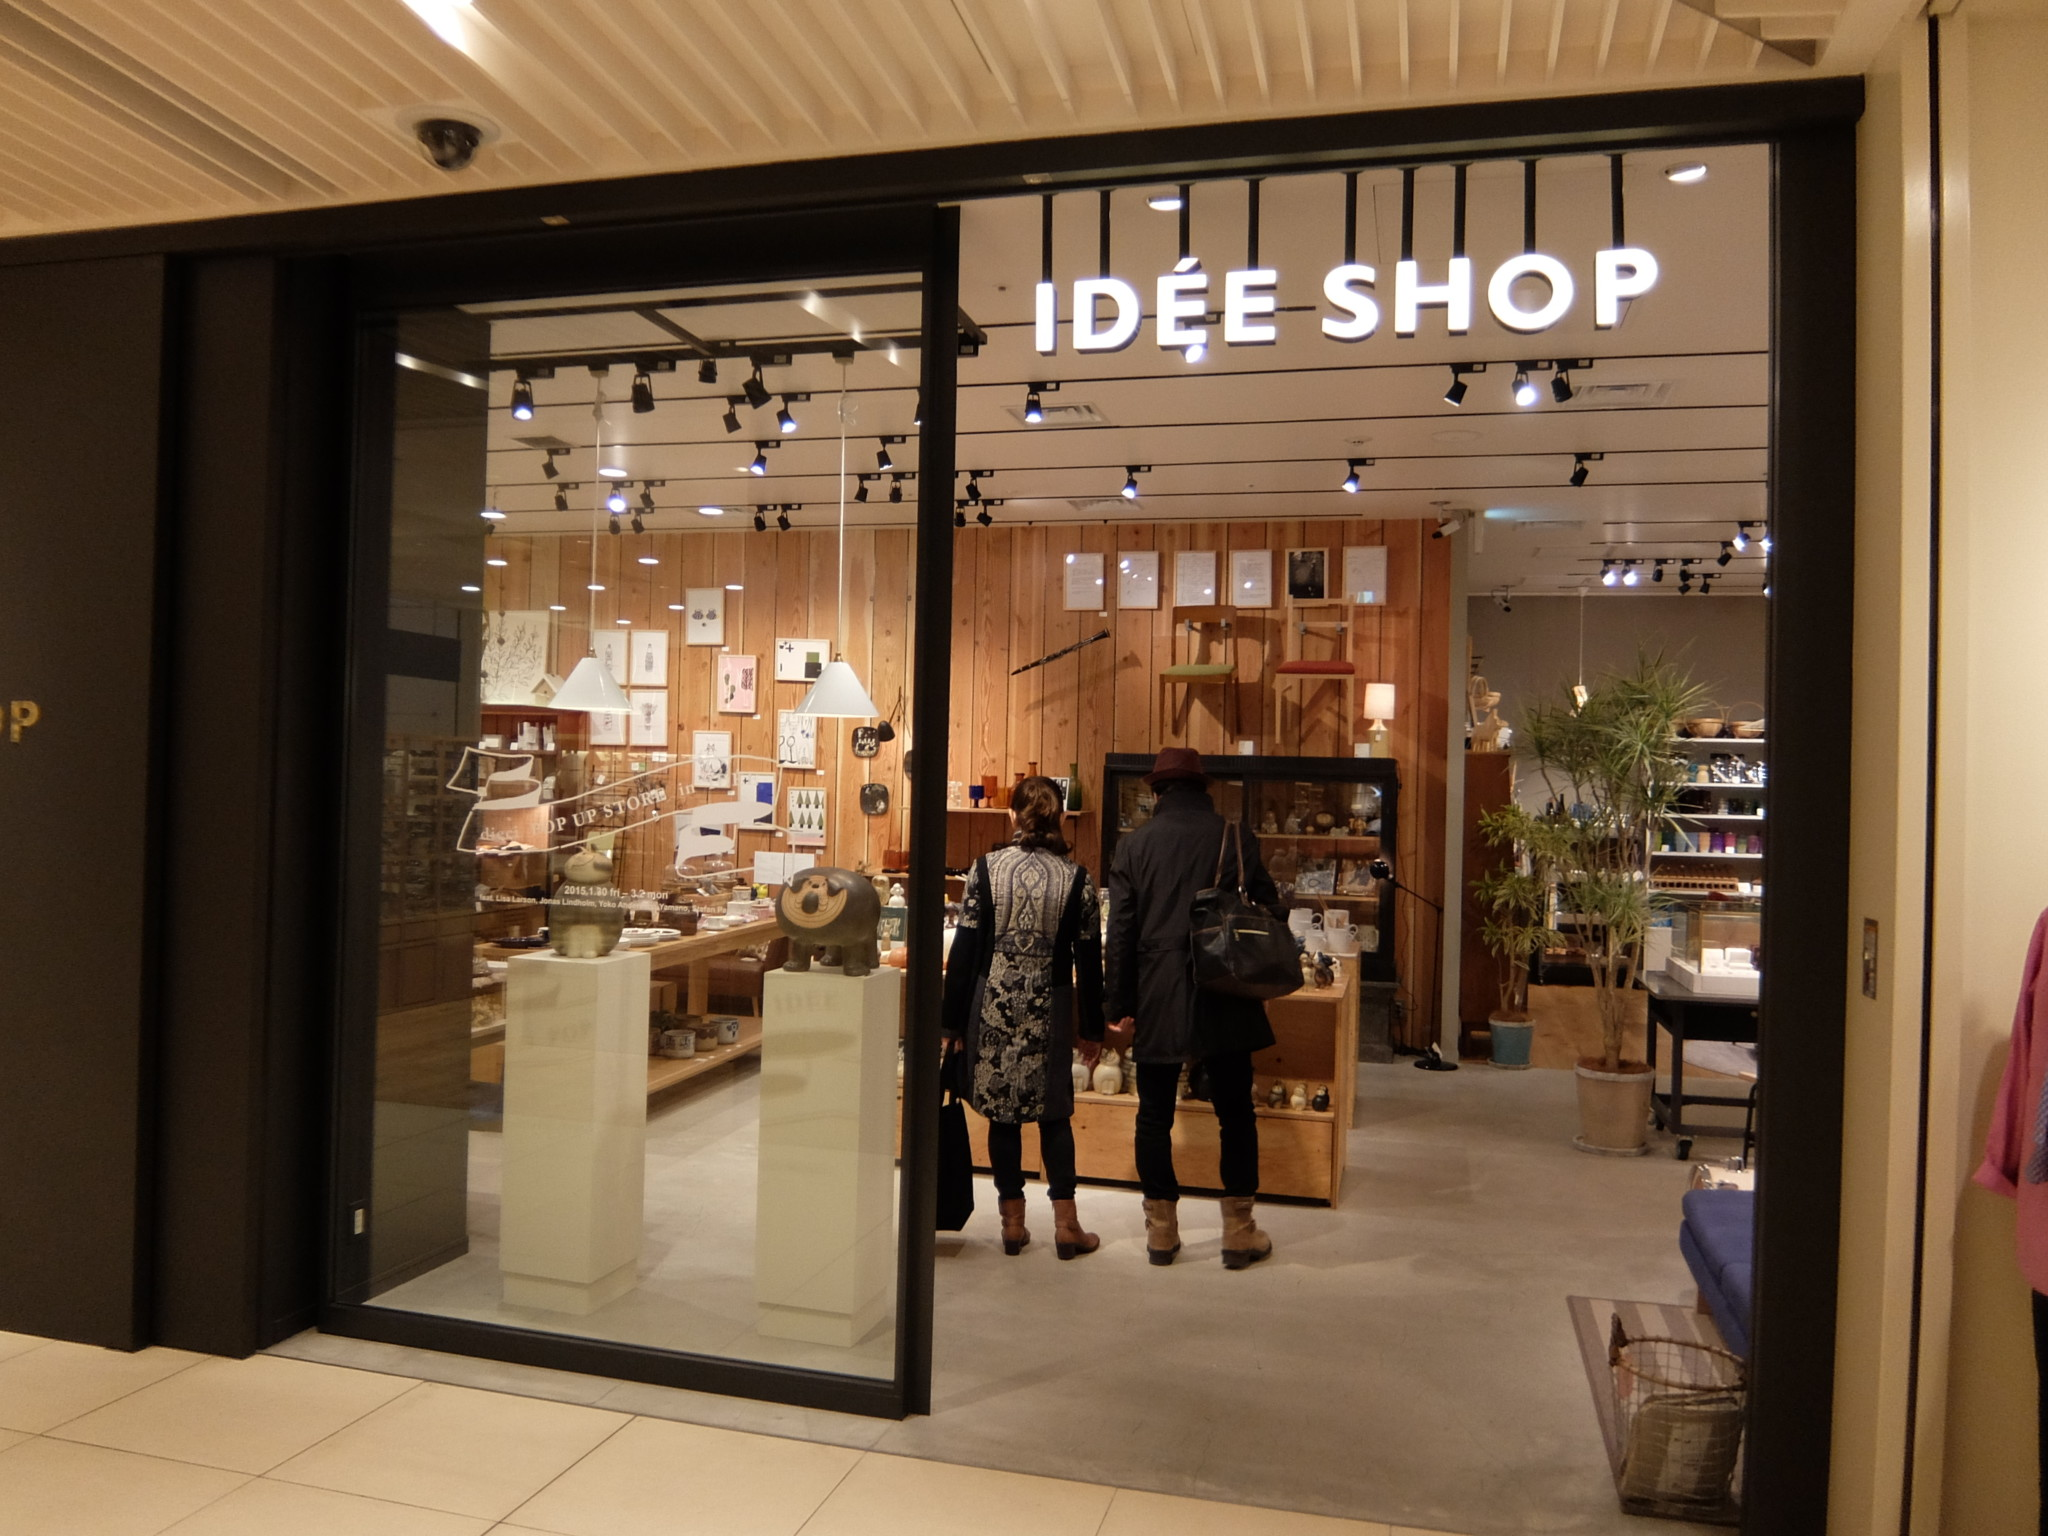 dieci POP UP STORE in IDÉE